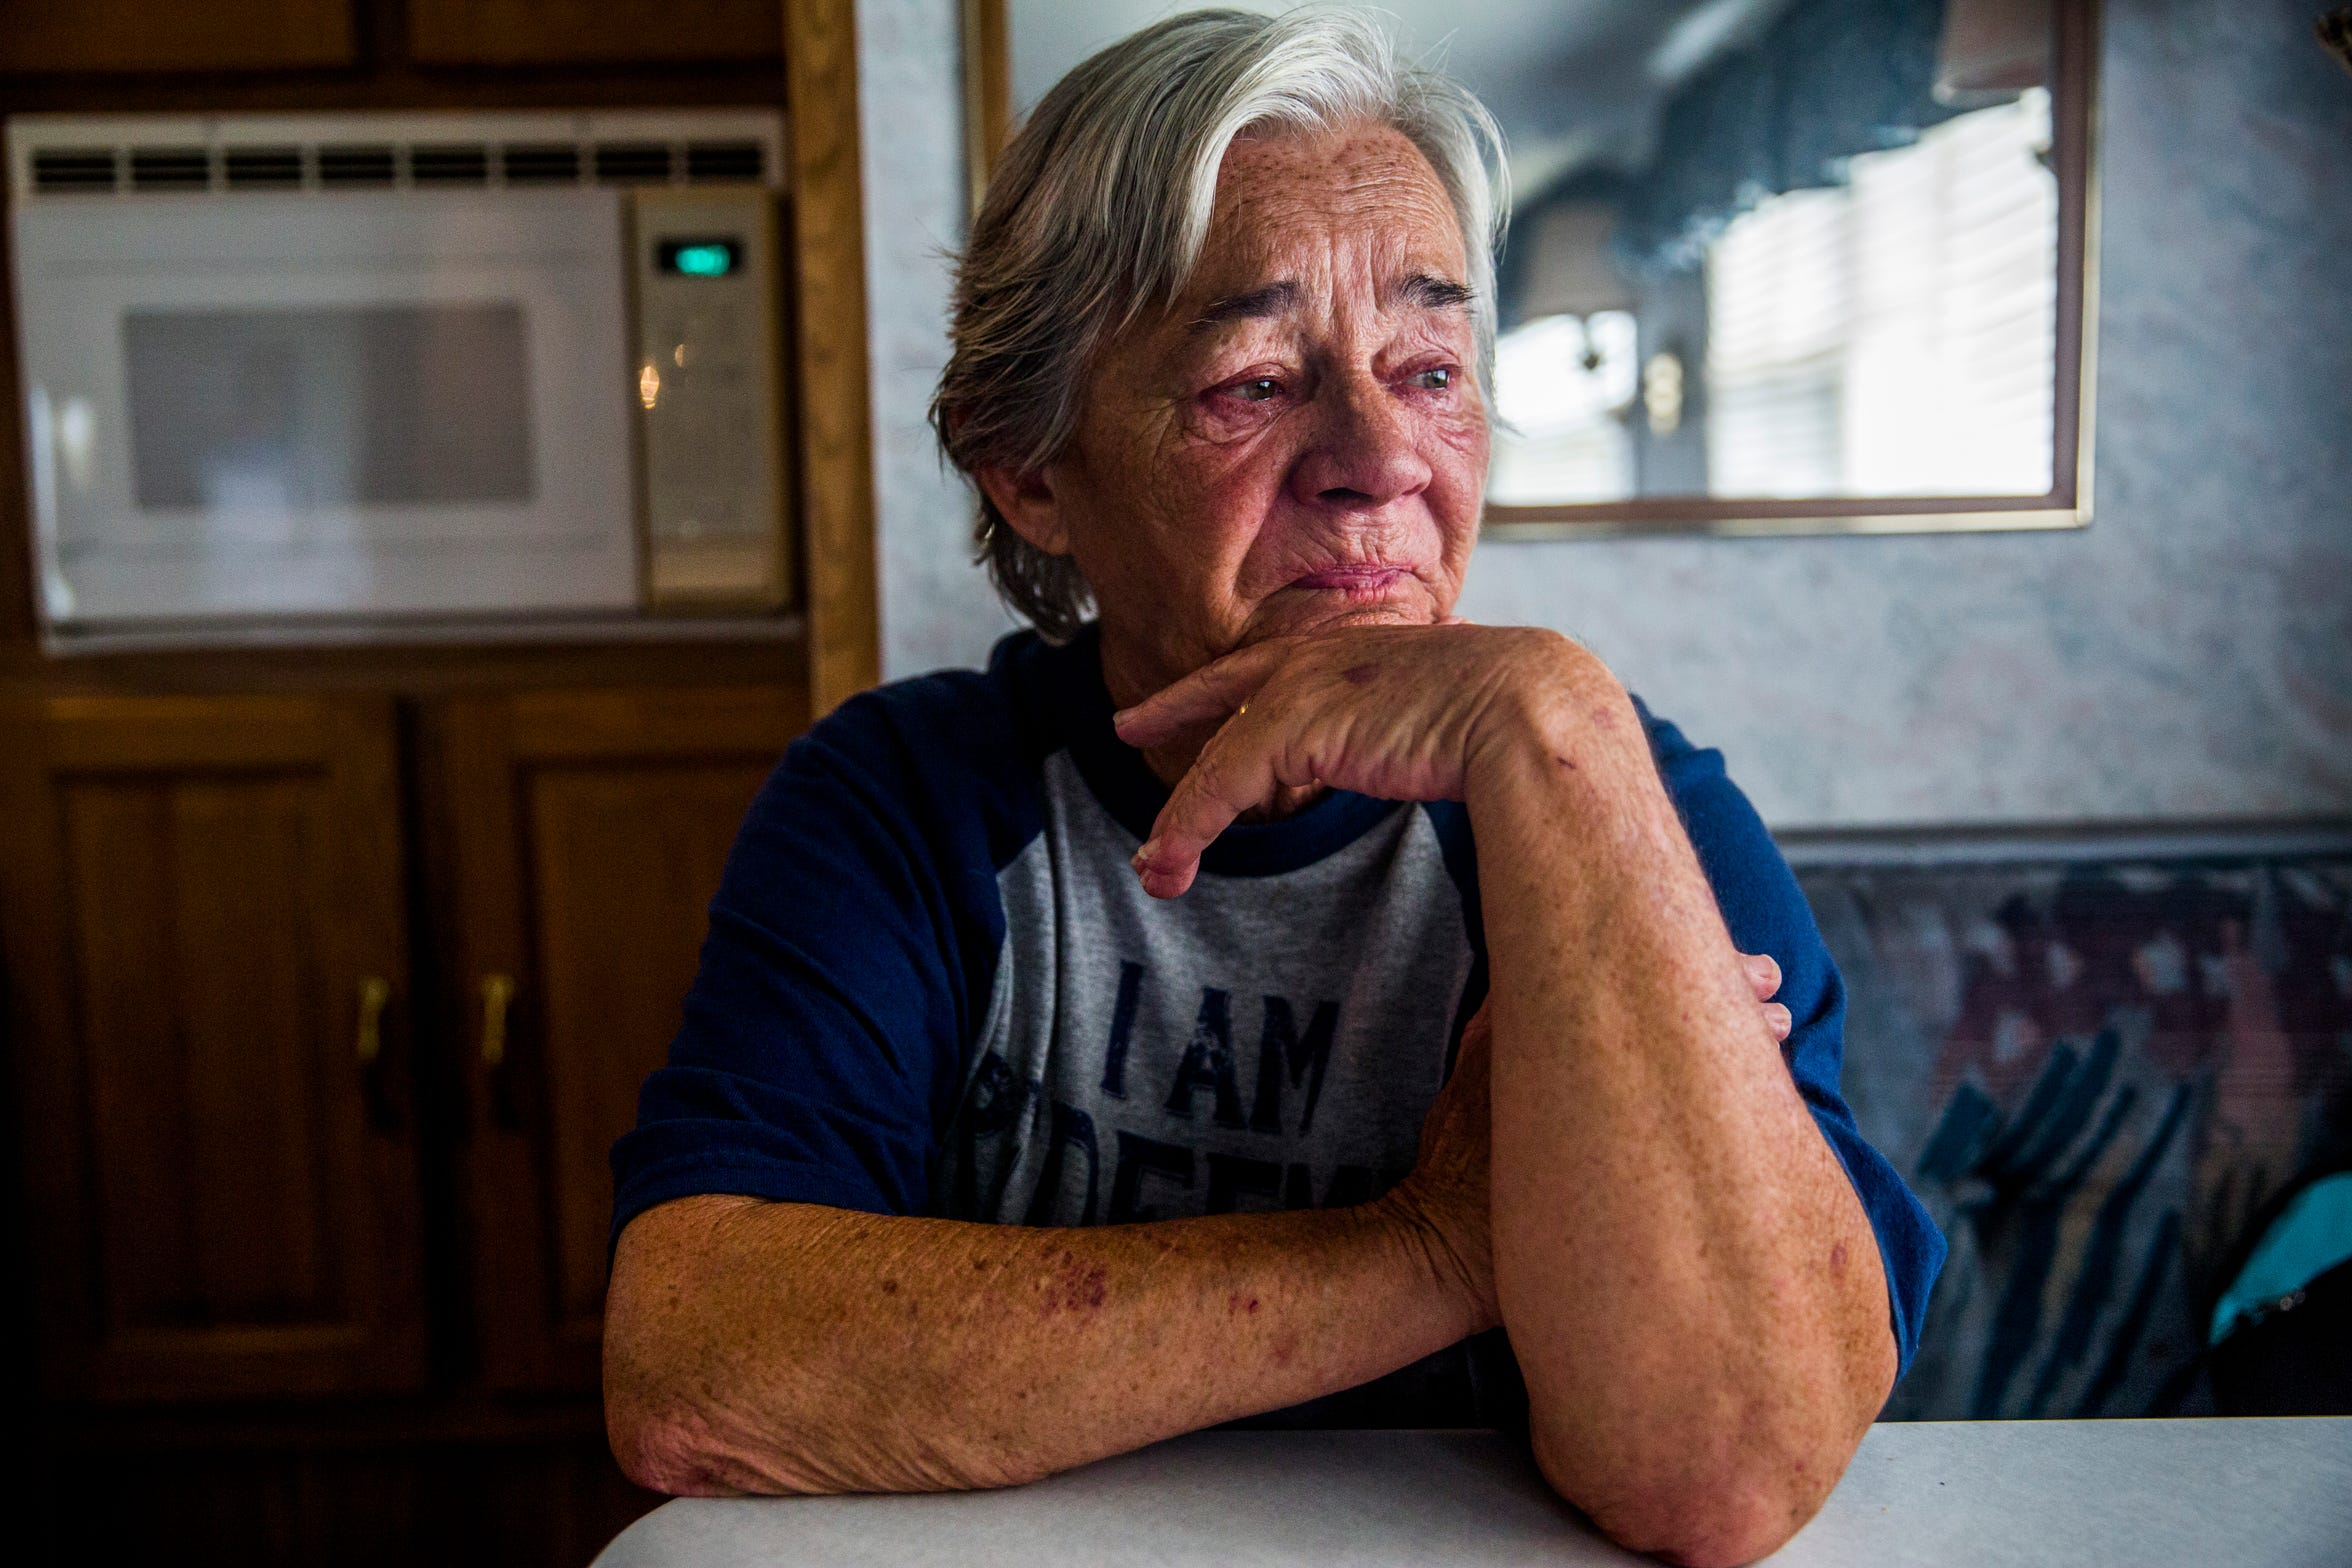 """Debbie Coe, 62, becomes emotional as she talks about losing her Immokalee home when Hurricane Irma hit a year ago, while sitting in her temporary Immokalee home on Wednesday, Aug. 22, 2018. Coe has custody of her 6-year-old great-nephew and has been caring for him alone since her husband died in February 2017. They are staying in an RV while they wait for their home to be rebuilt by the Guadalupe Center. Coe's home will be the nonprofit's first home rebuild port-Irma. """"I have a roof over my head. My stove don't work, my refrigerator don't work, but I have a roof over my head,"""" Coe says."""